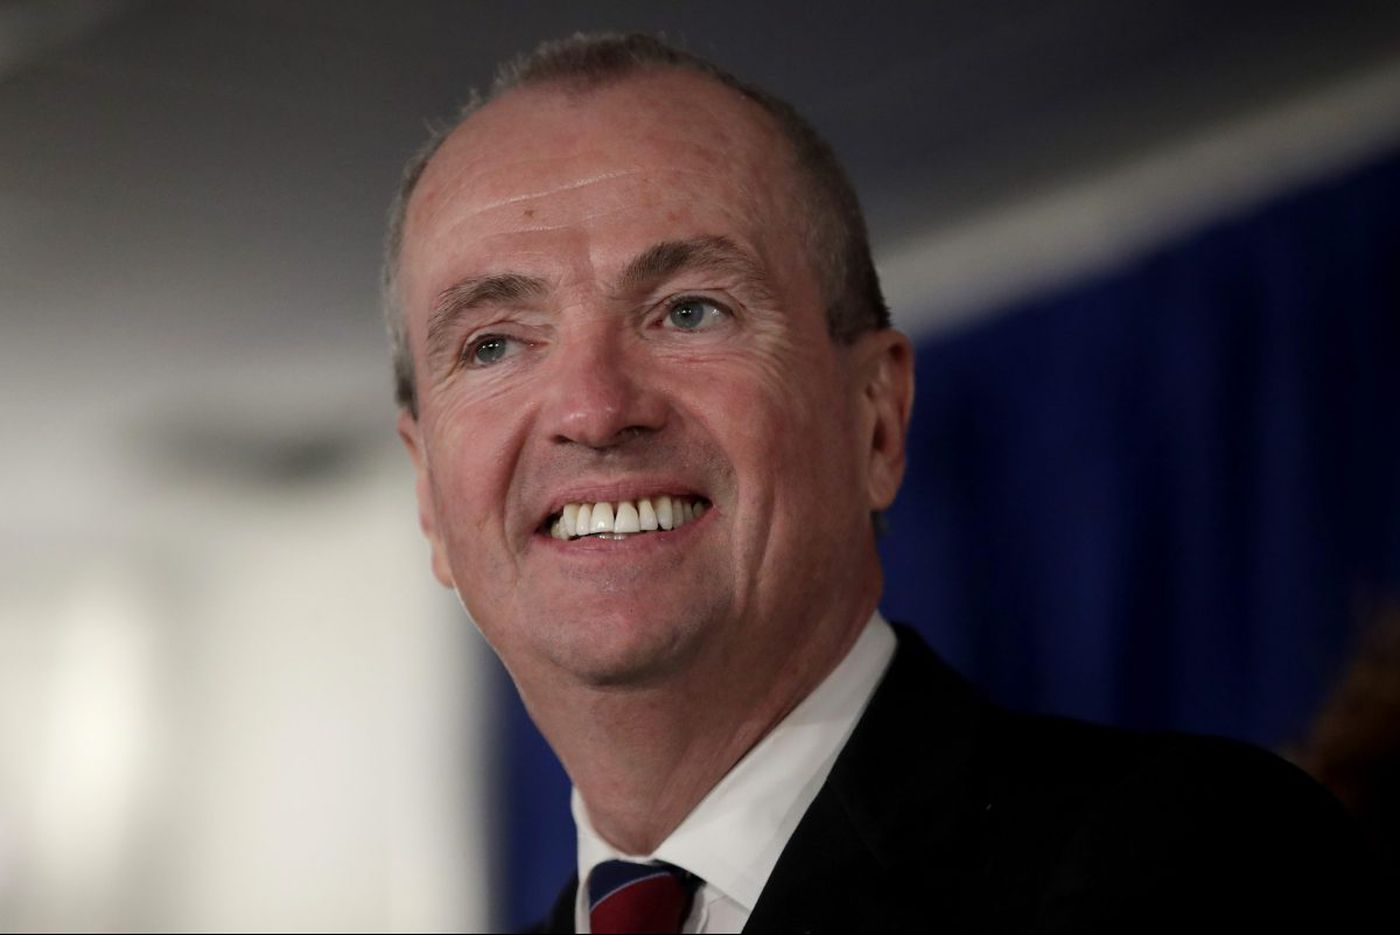 New Jersey governor wants 'czar' to encourage towns to share services